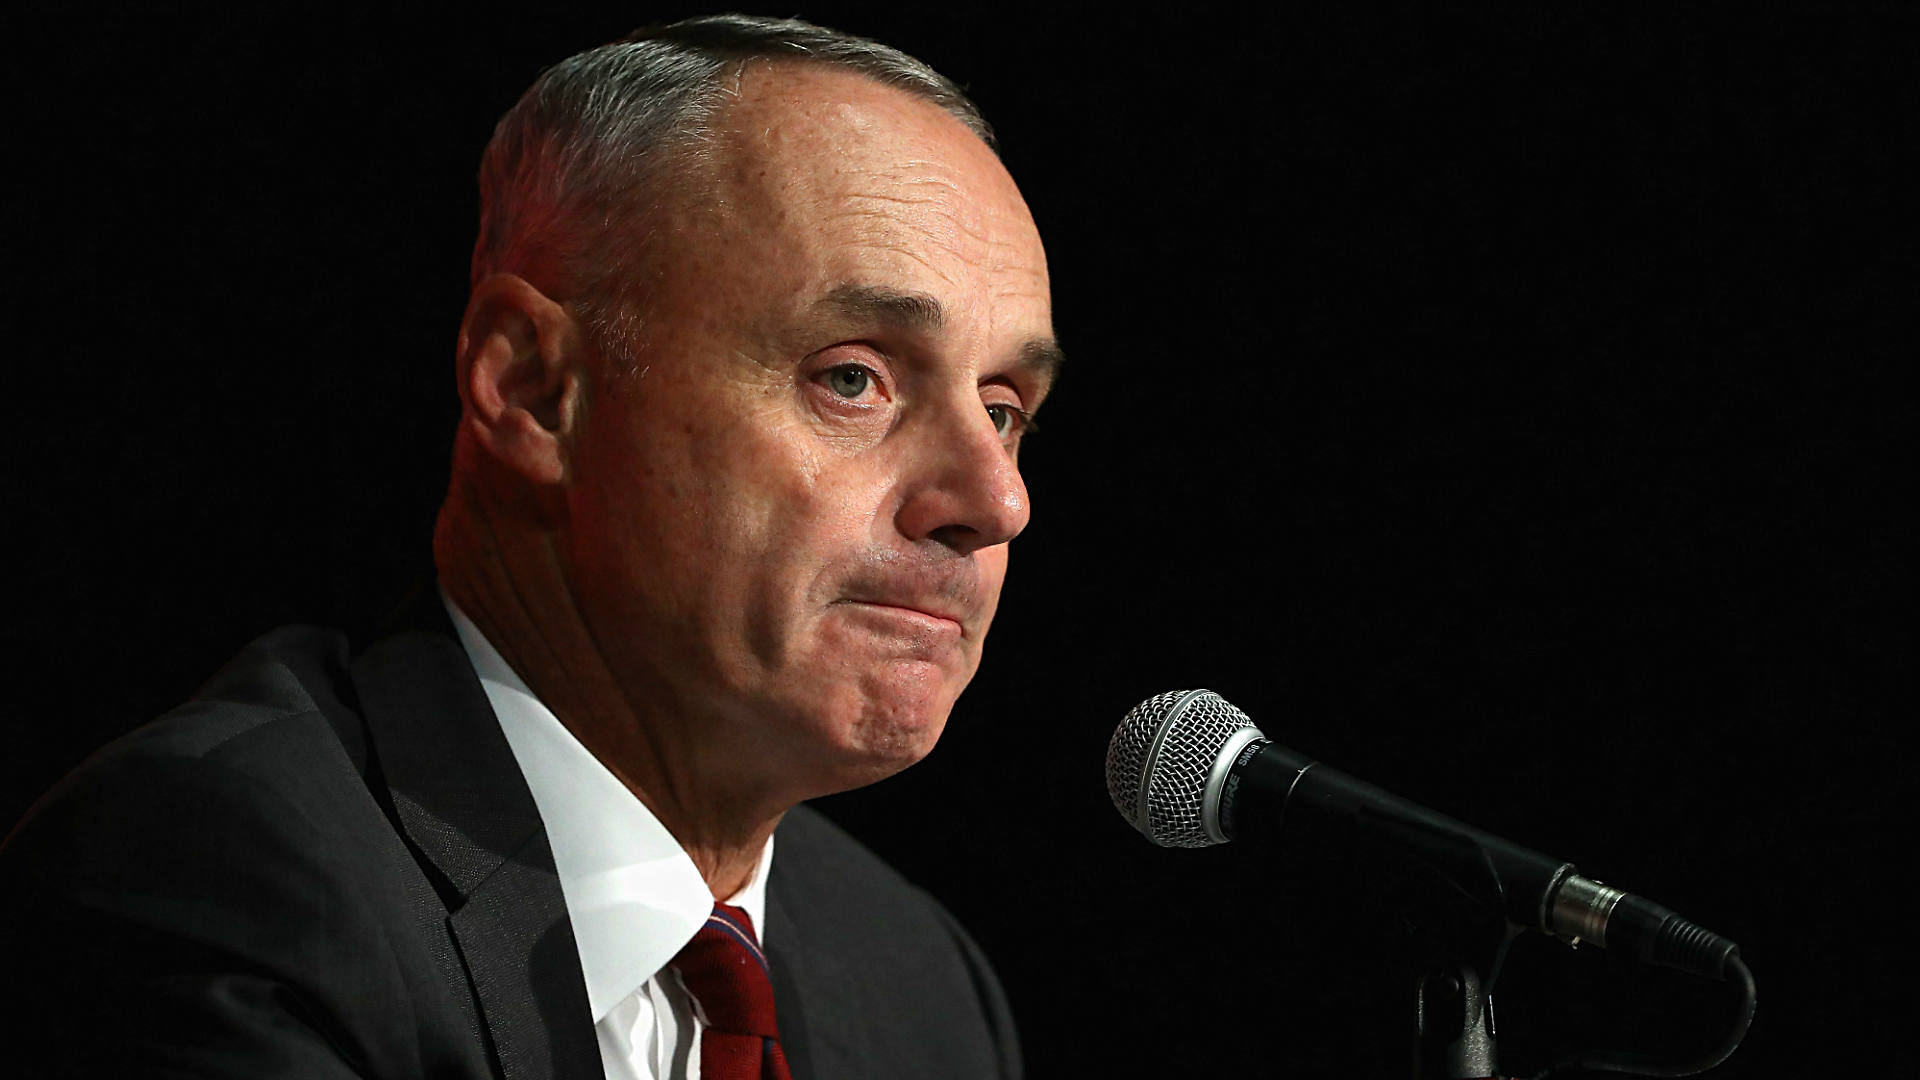 Rob Manfred, Derek Jeter and bad faith make ugly Marlins situation even worse